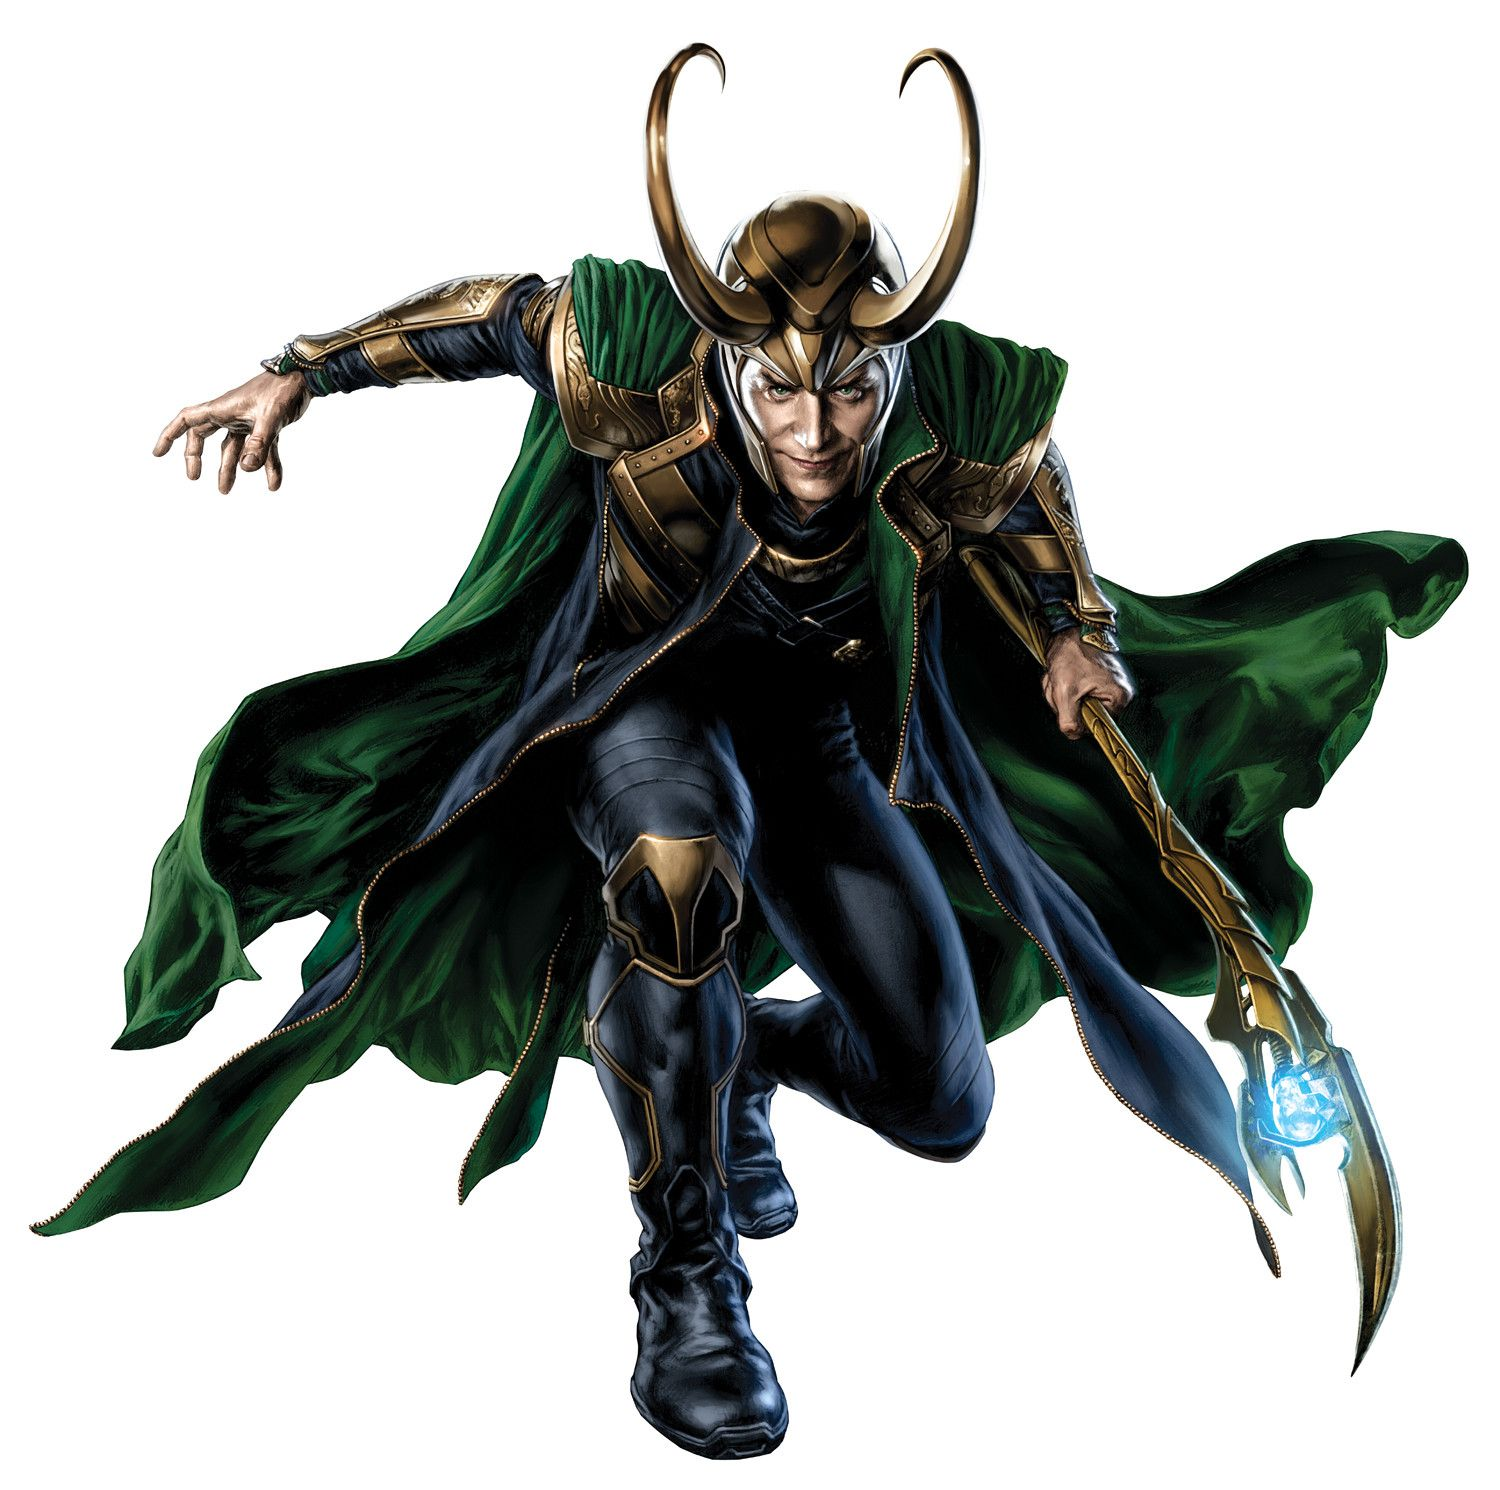 http://images.clipartlook clipartlook.co-http://images.clipartlook clipartlook.com/avenger-clipart-avengers--15